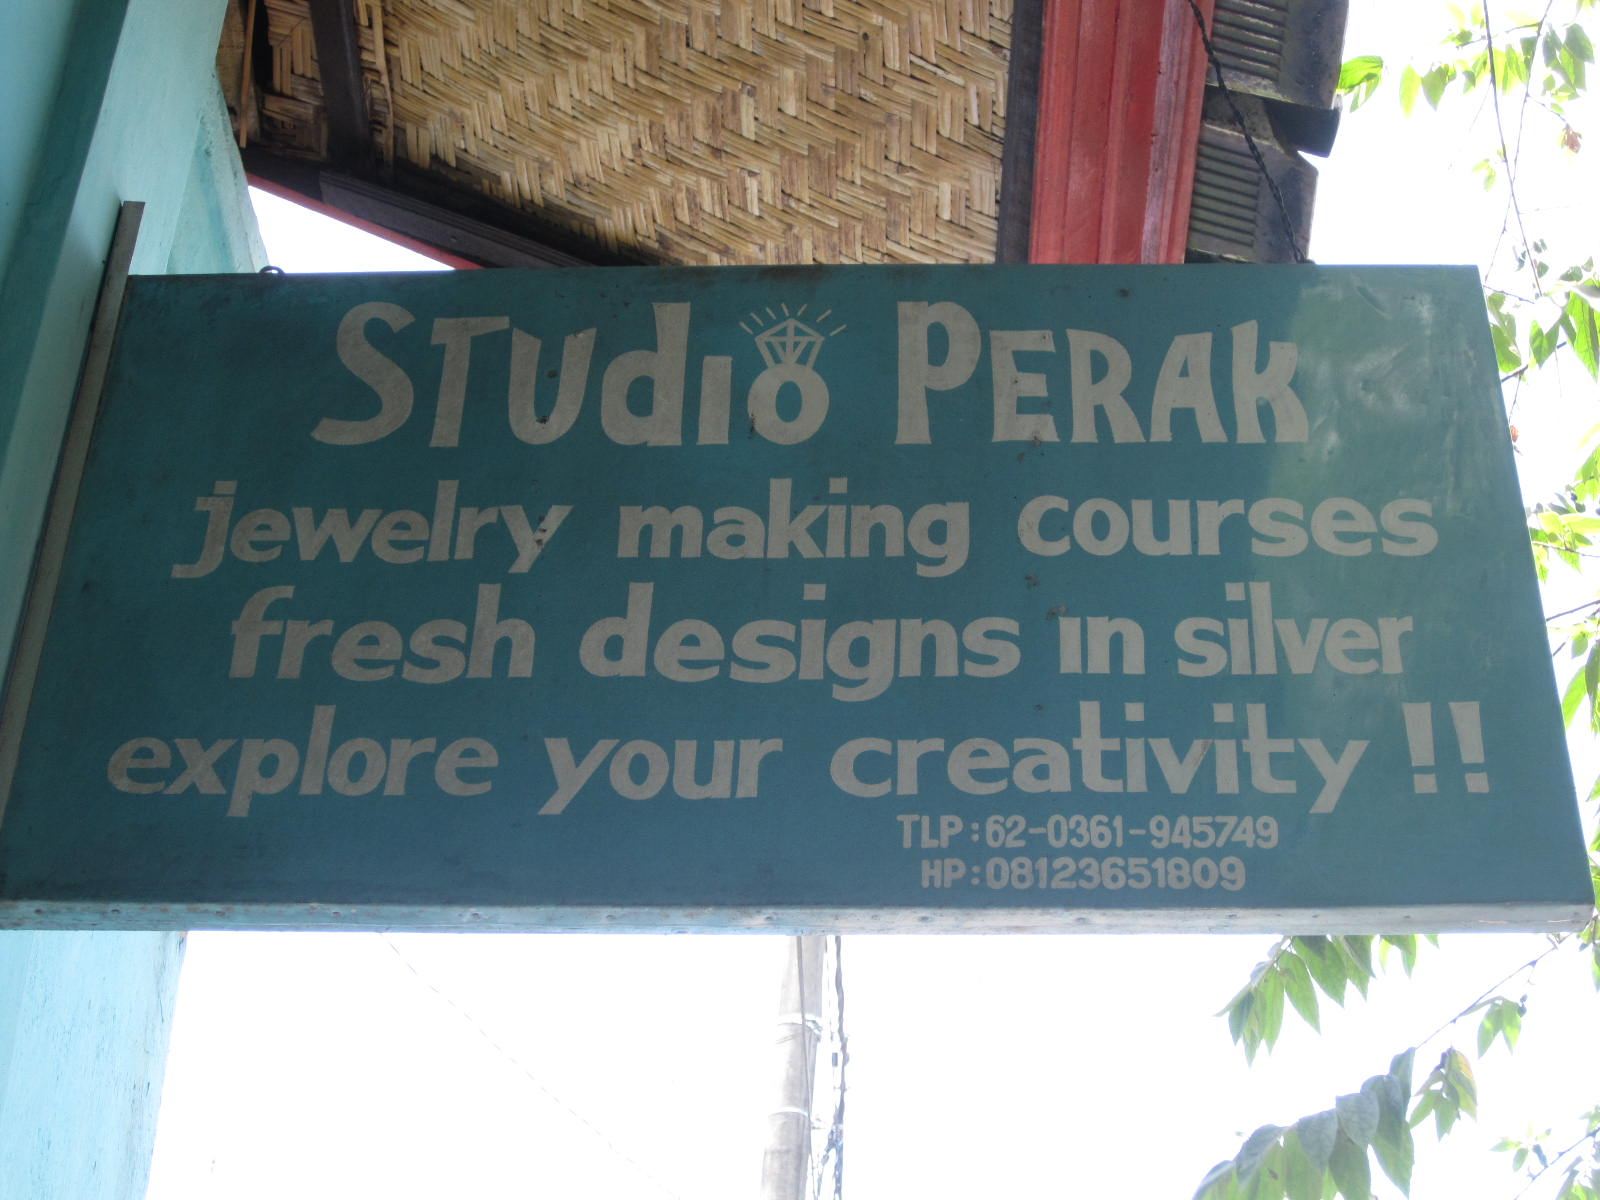 Studio Perak is located on Hanuman Street in central Ubud, Bali